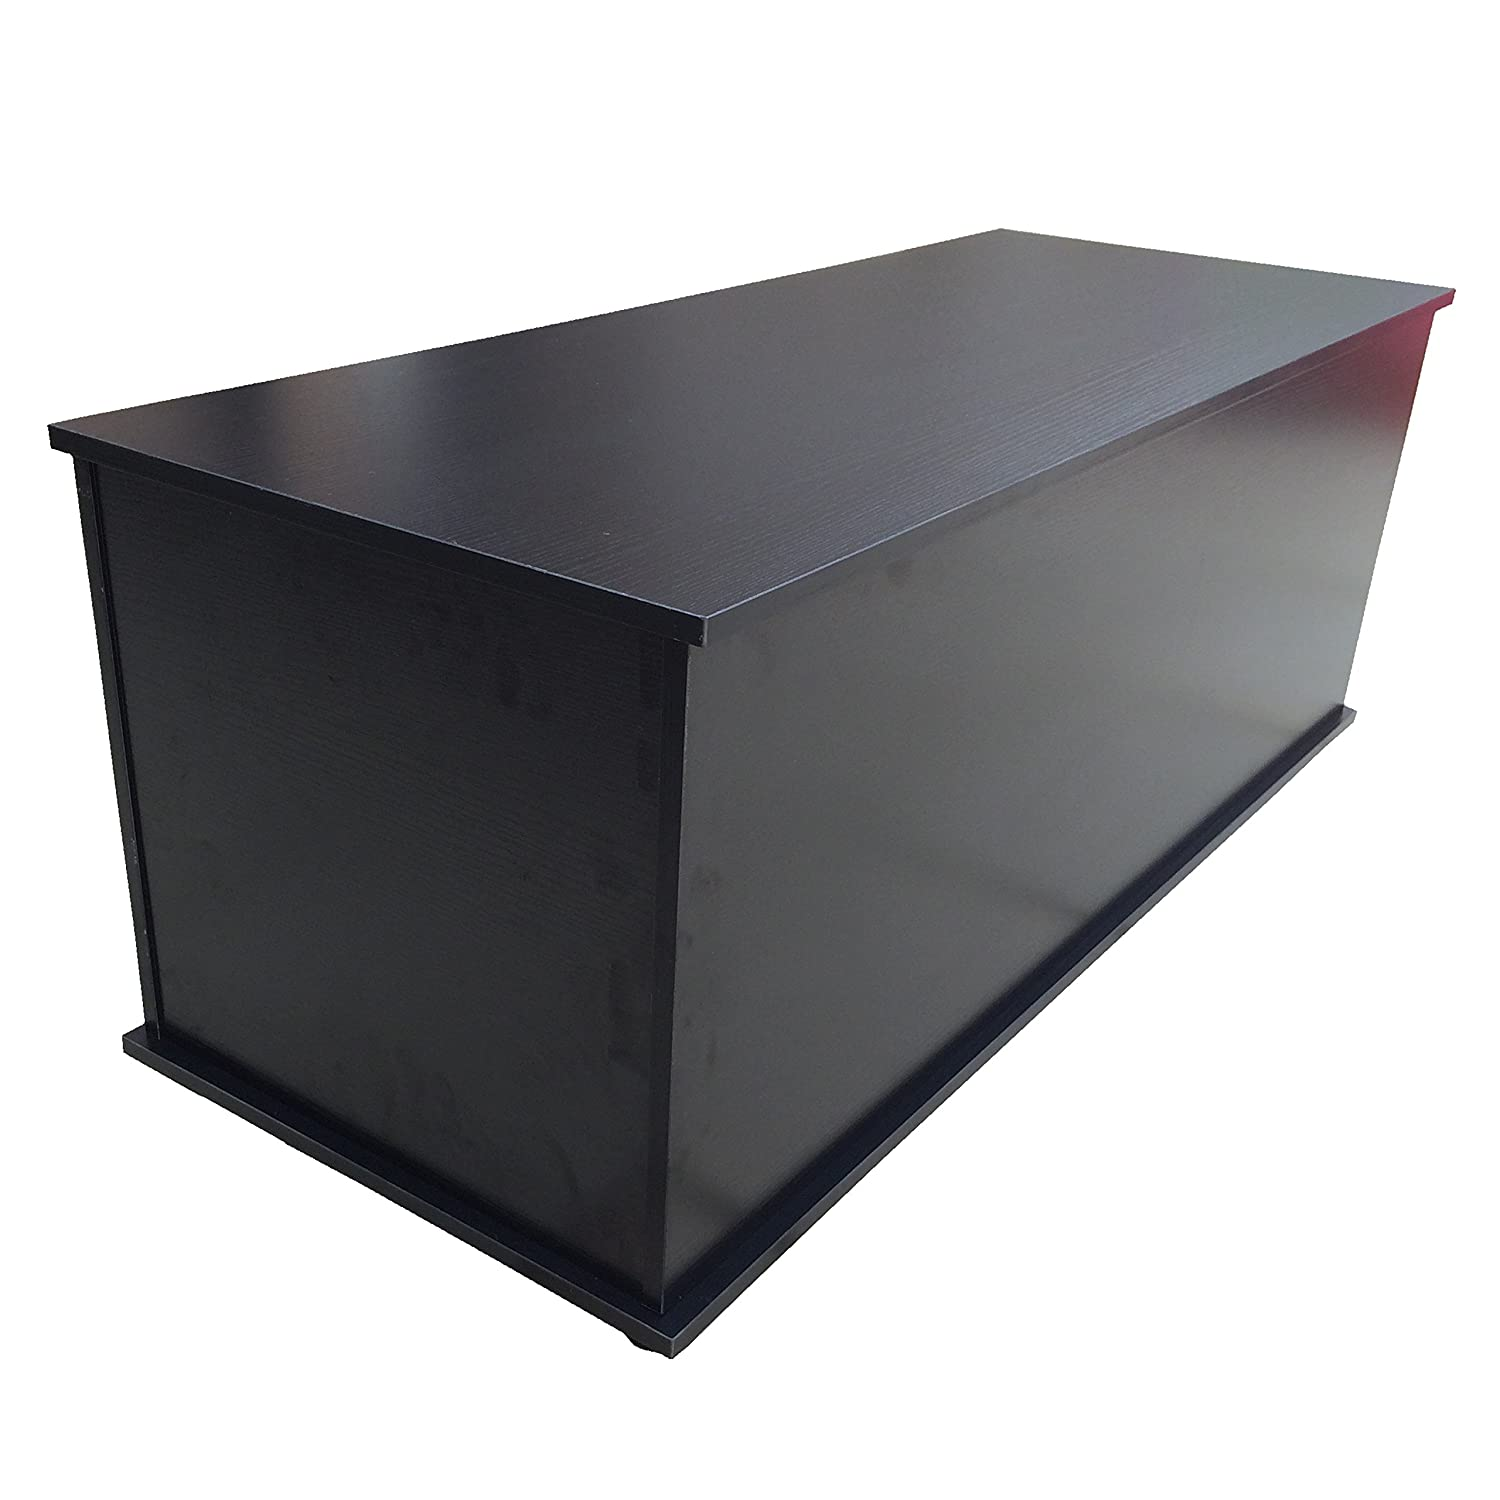 Redstone Black Ottoman Storage Chest - Hinge can be Locked with Pin to  Prevent Lid from Dropping when Open: Amazon.co.uk: Kitchen & Home - Redstone Black Ottoman Storage Chest - Hinge Can Be Locked With